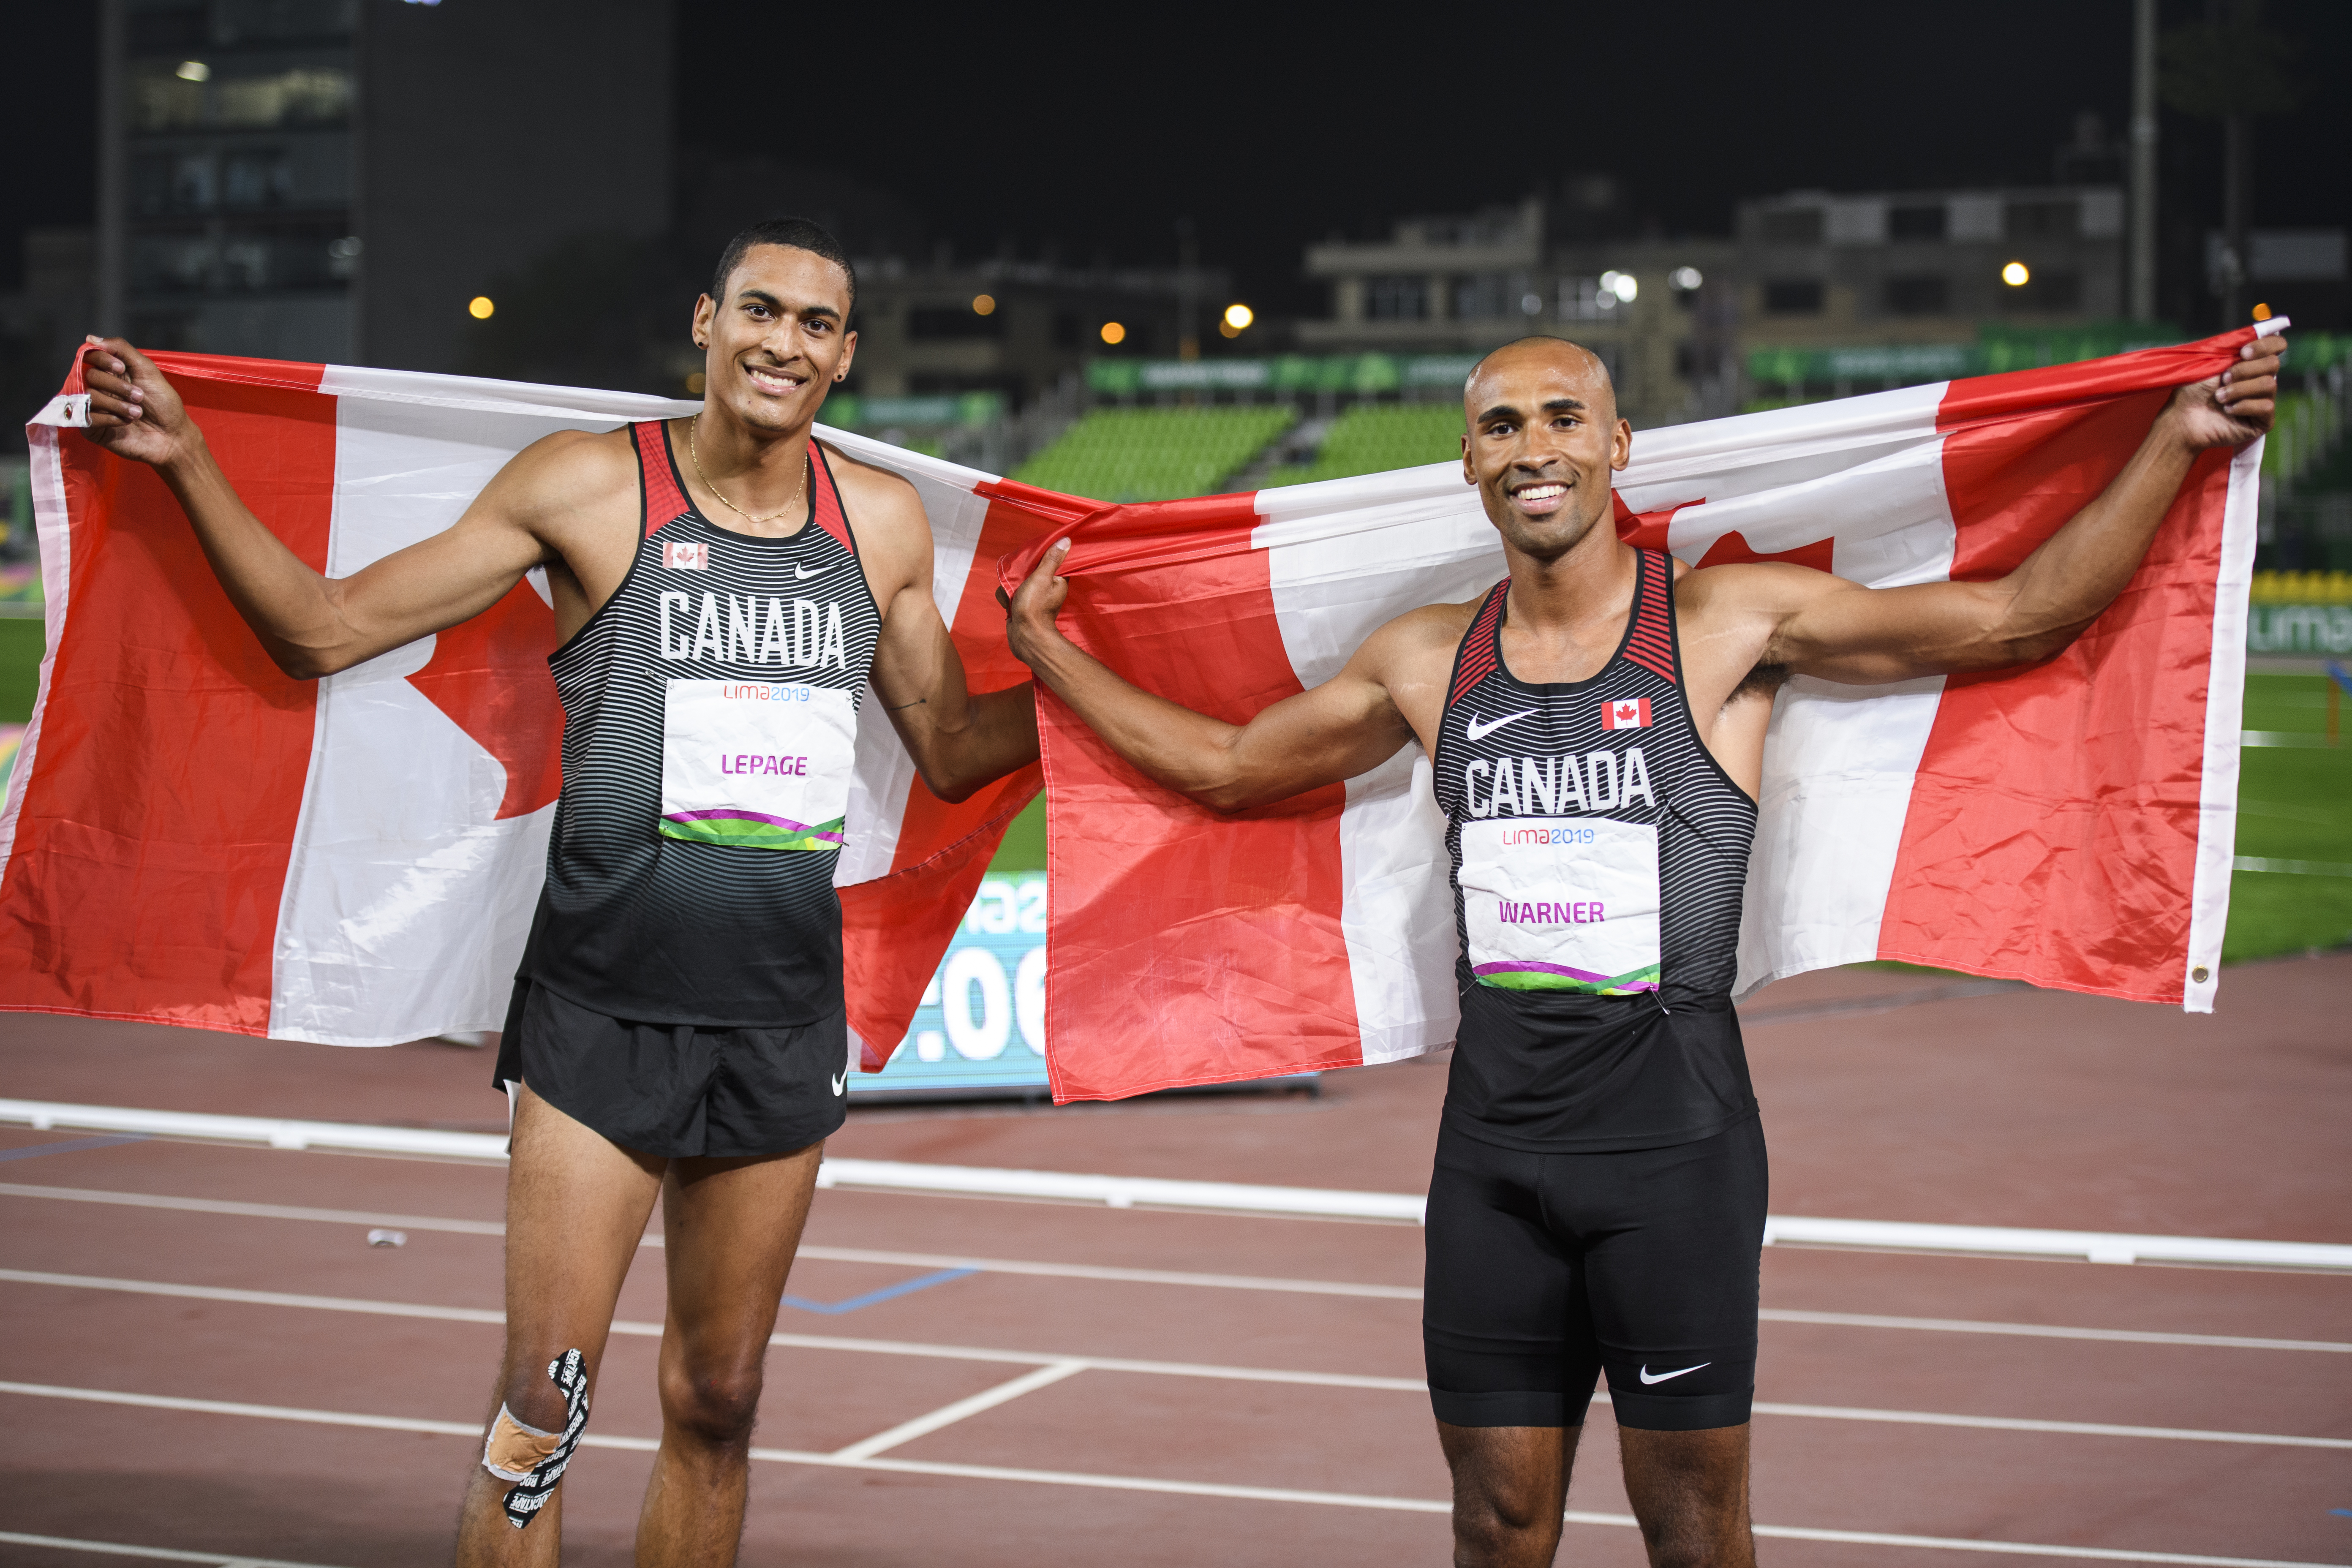 Pierce Lepage and Damian Warner take photo with Canadian flag